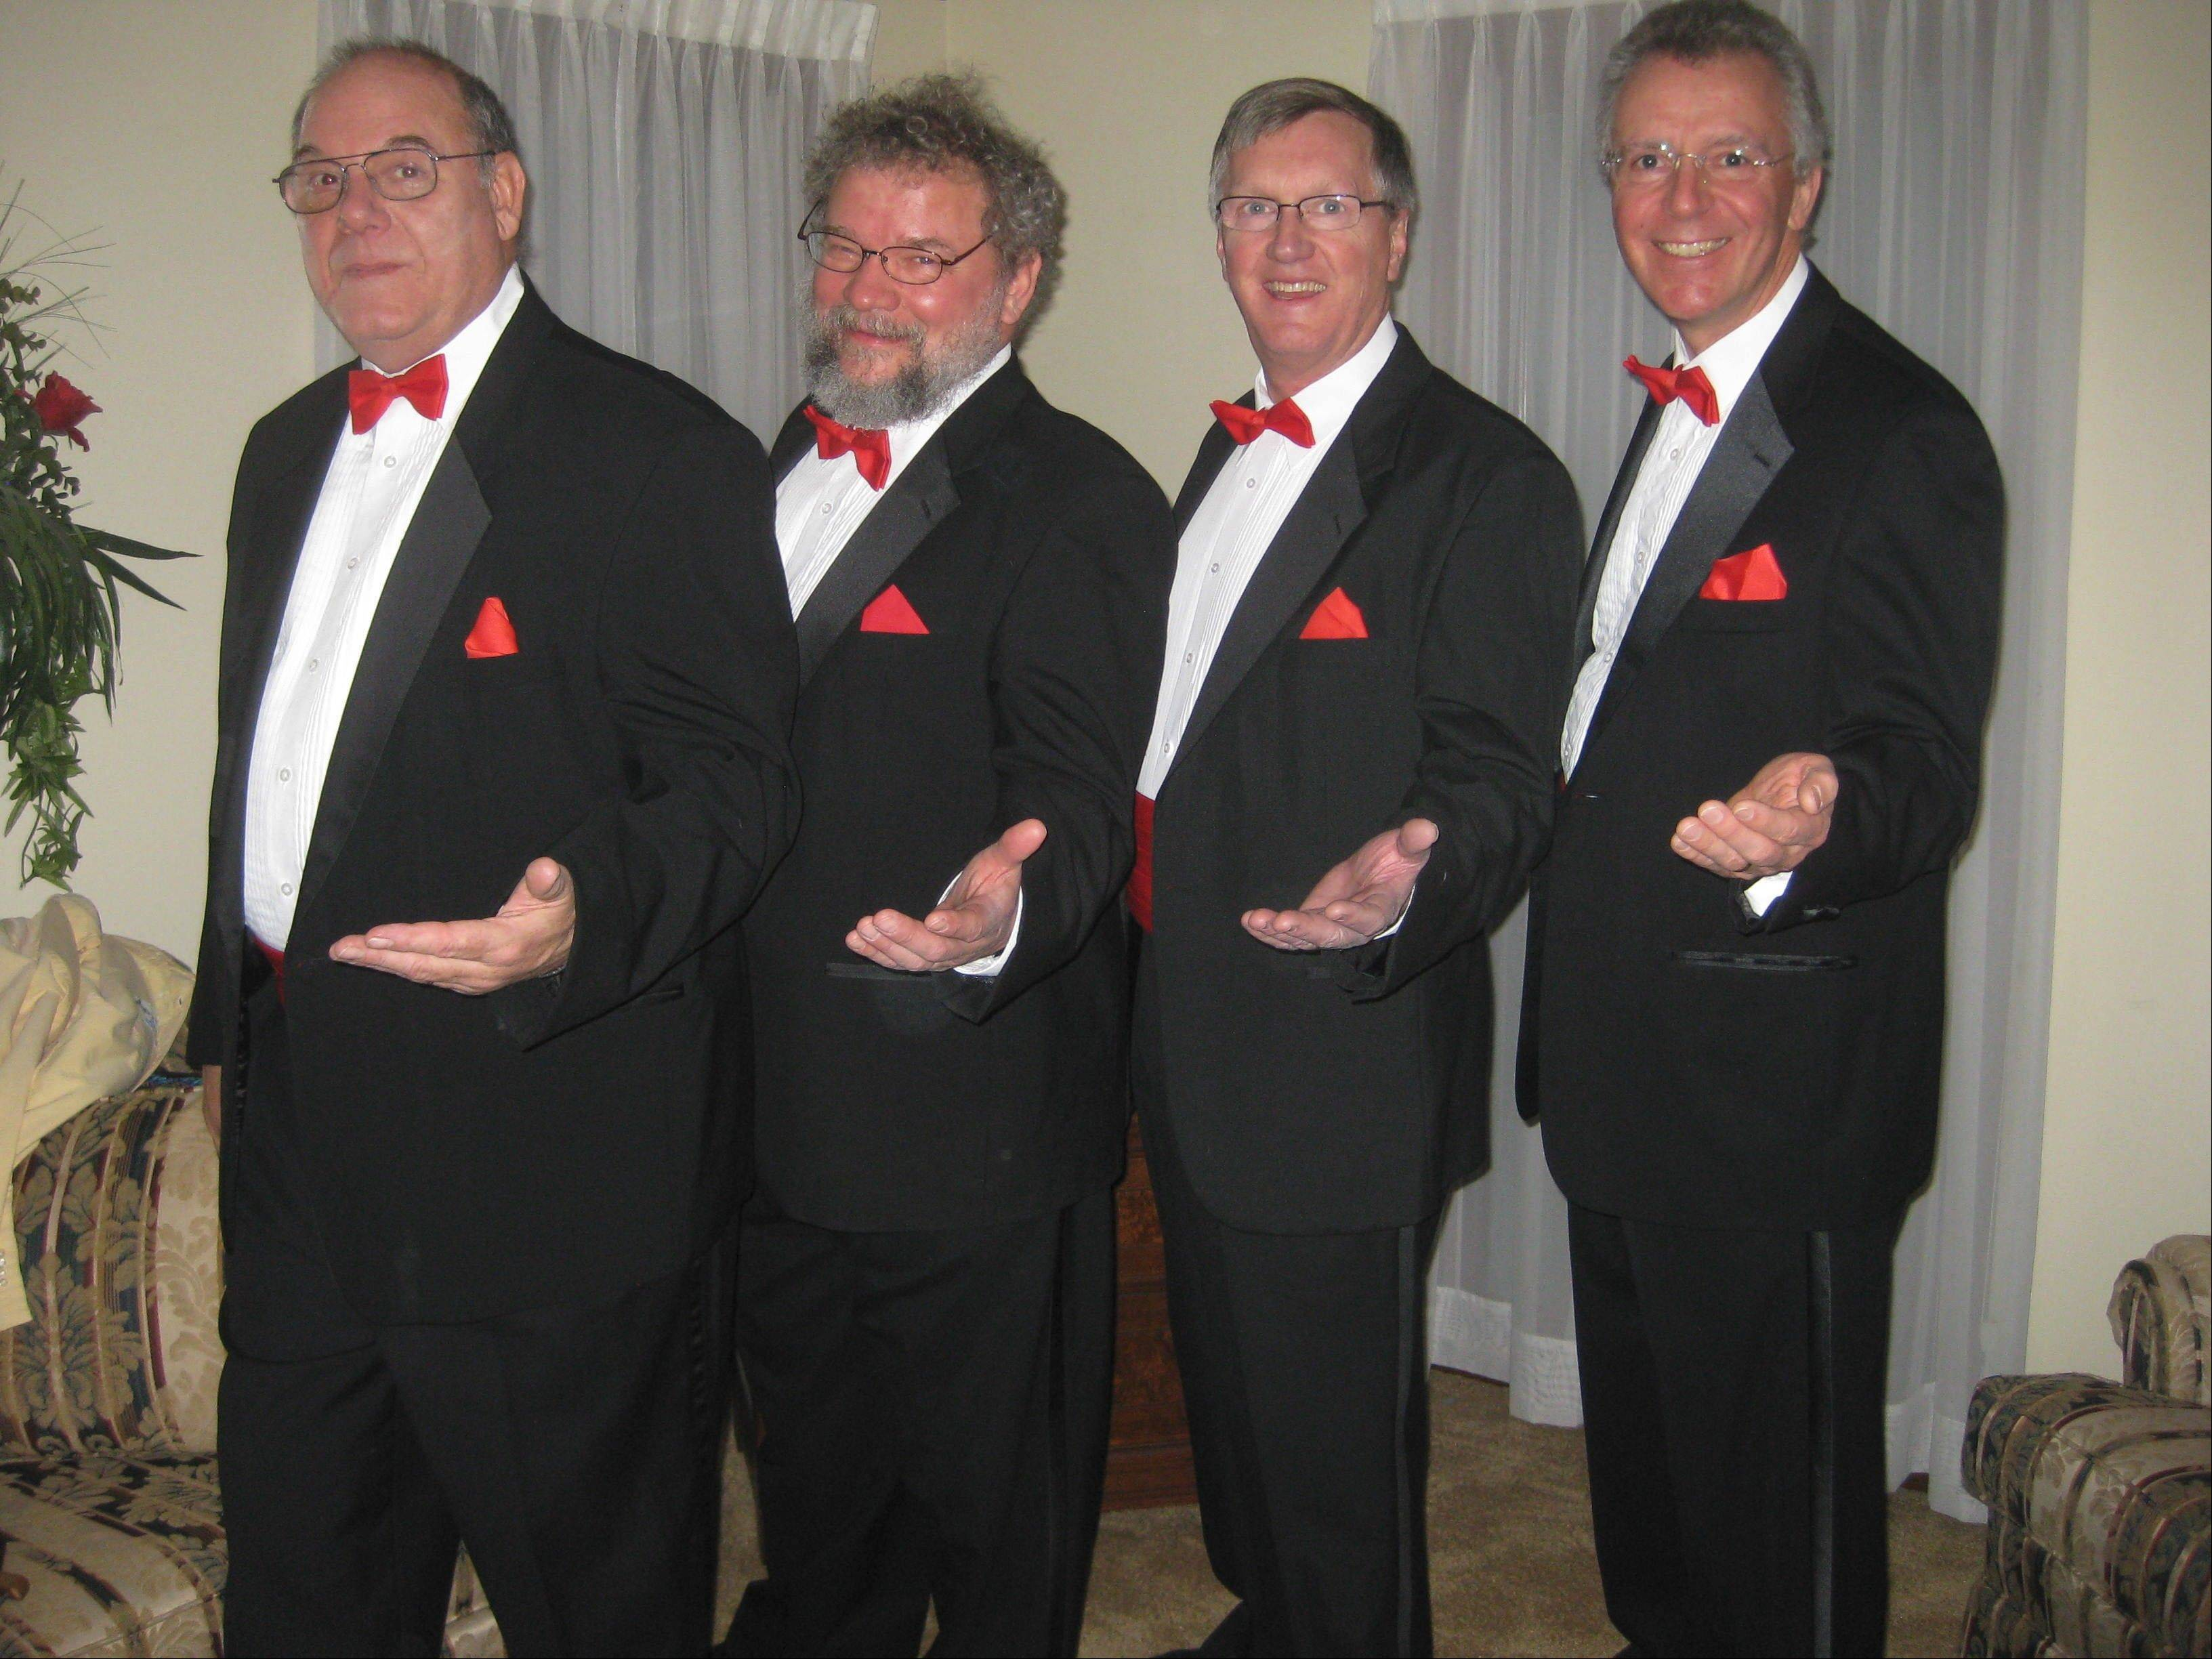 The Upside Downers Quartet is one of several barbershop groups with members of the Chorus of DuPage that will deliver singing Valentines. John Oberlin (baritone), from left, Mark Johnson (bass), Jim Morrison (lead) and Bruce Rhoades (tenor) will knock on doors or sing in workplaces in tuxes with red bow ties.